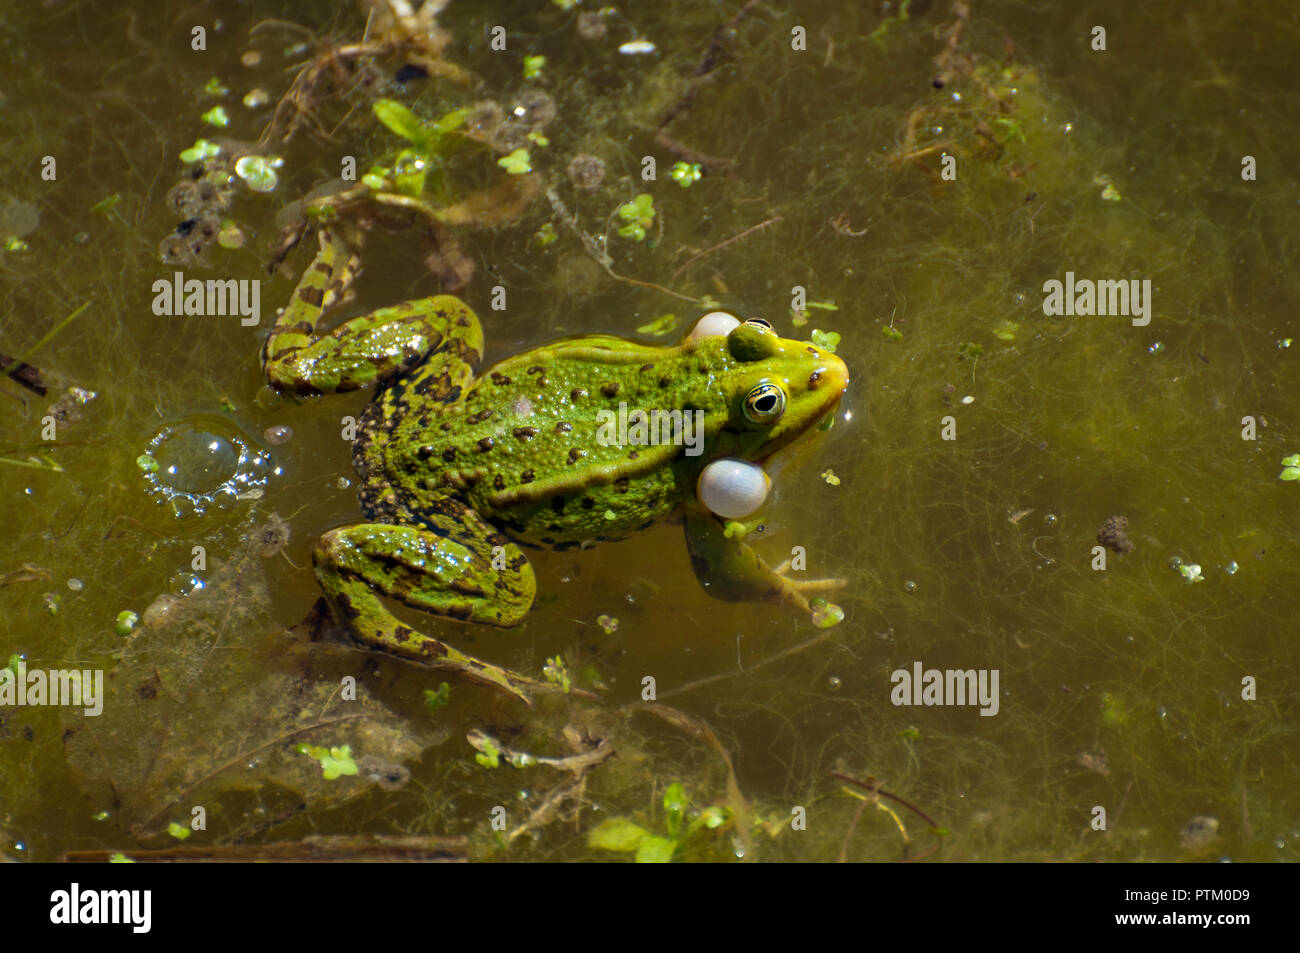 Green frog (Rana esculenta) with inflated vocal sacs in water, Estonia - Stock Image